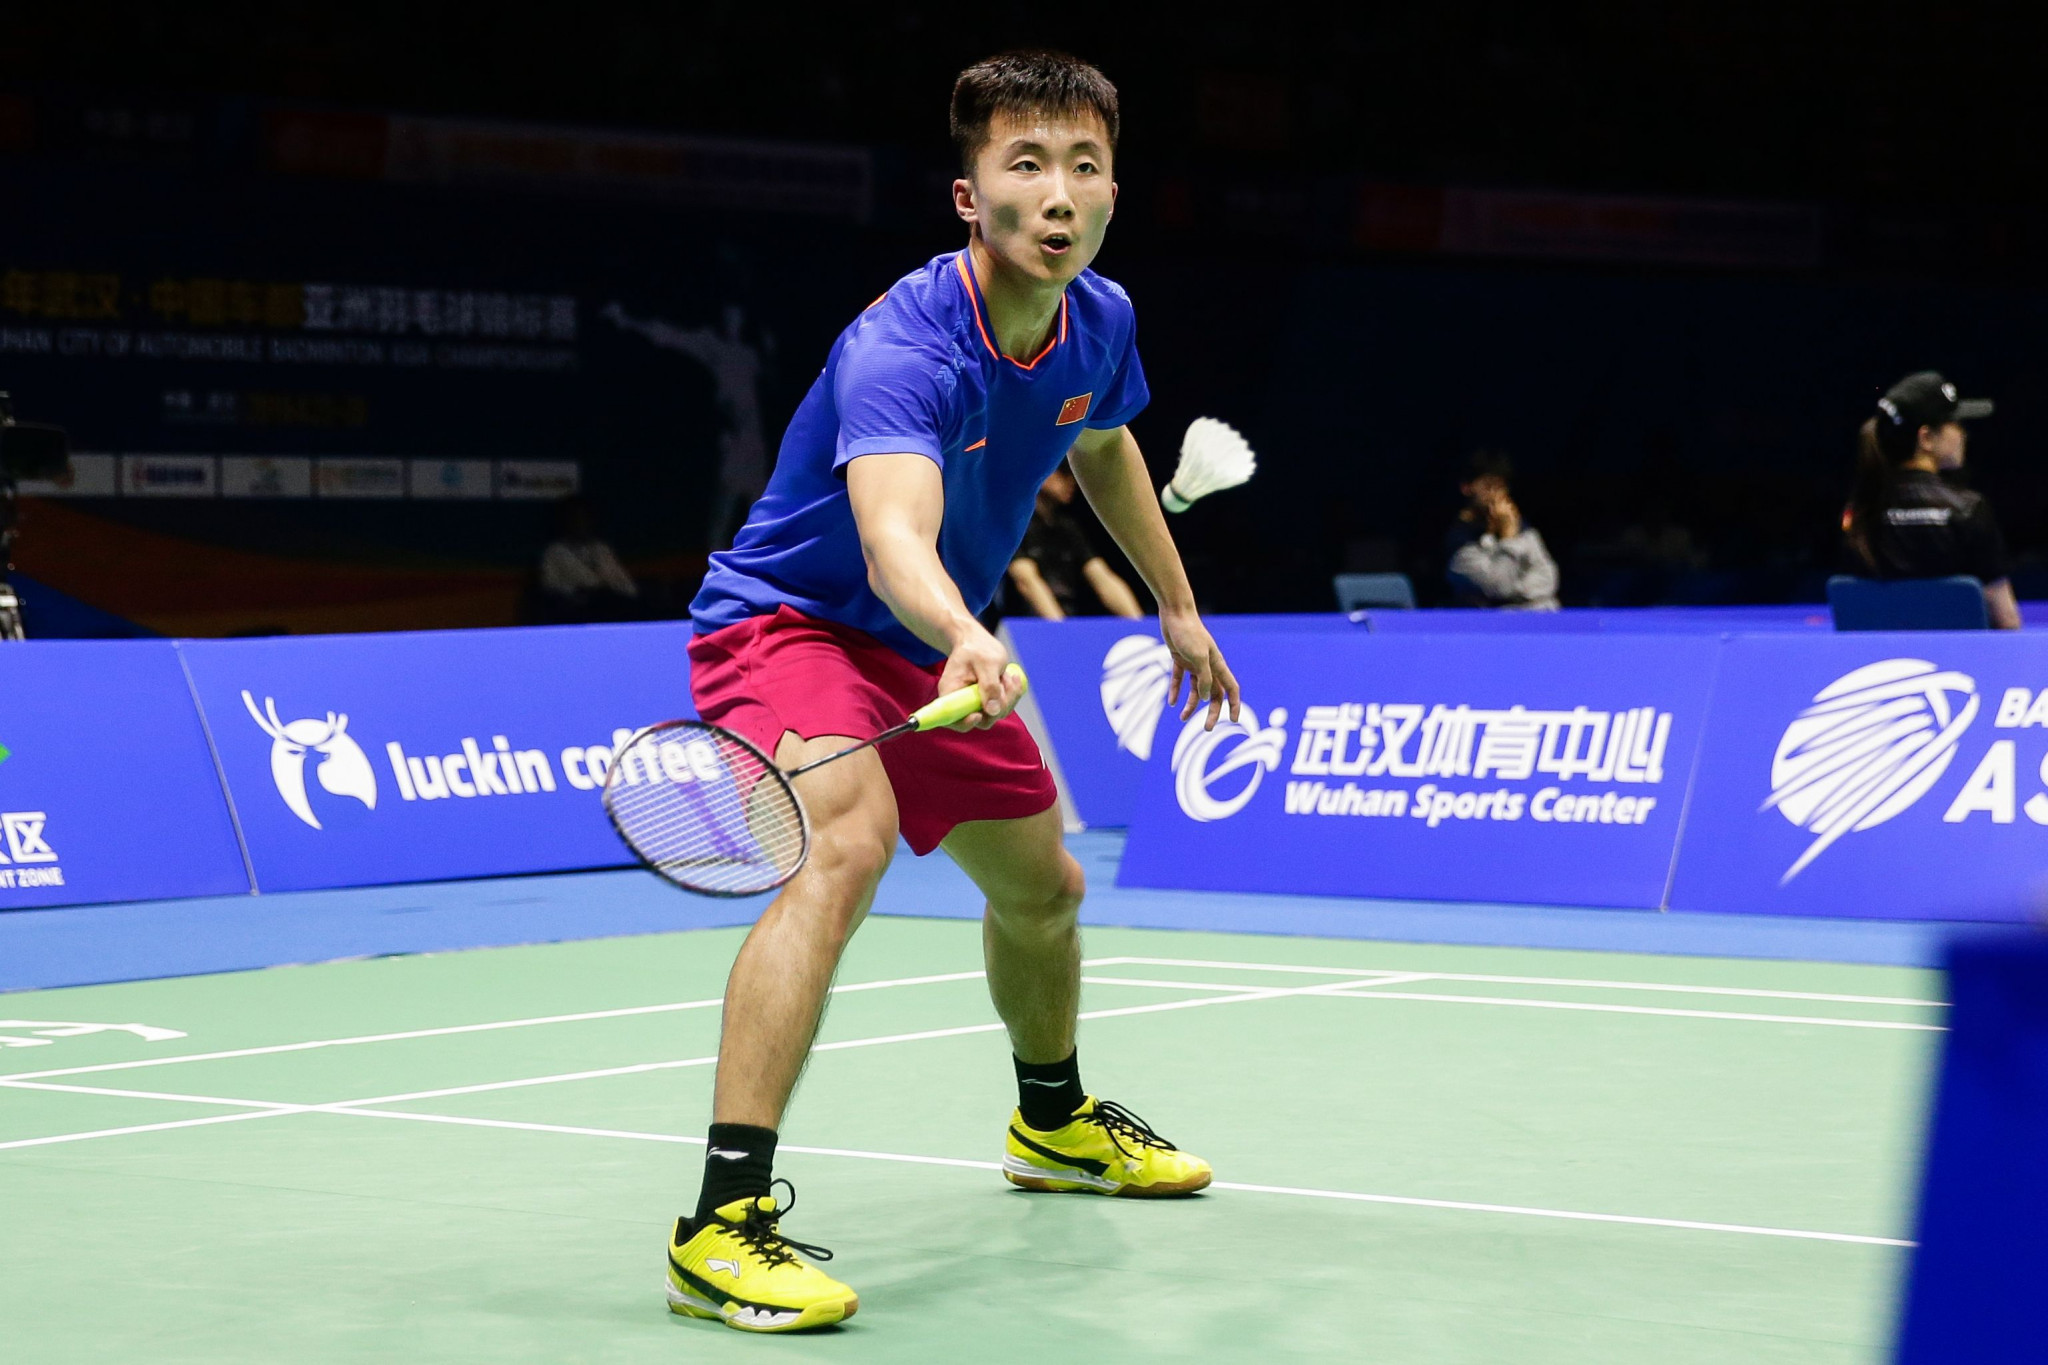 Defending champion Lu knocked out of BWF Australian Open